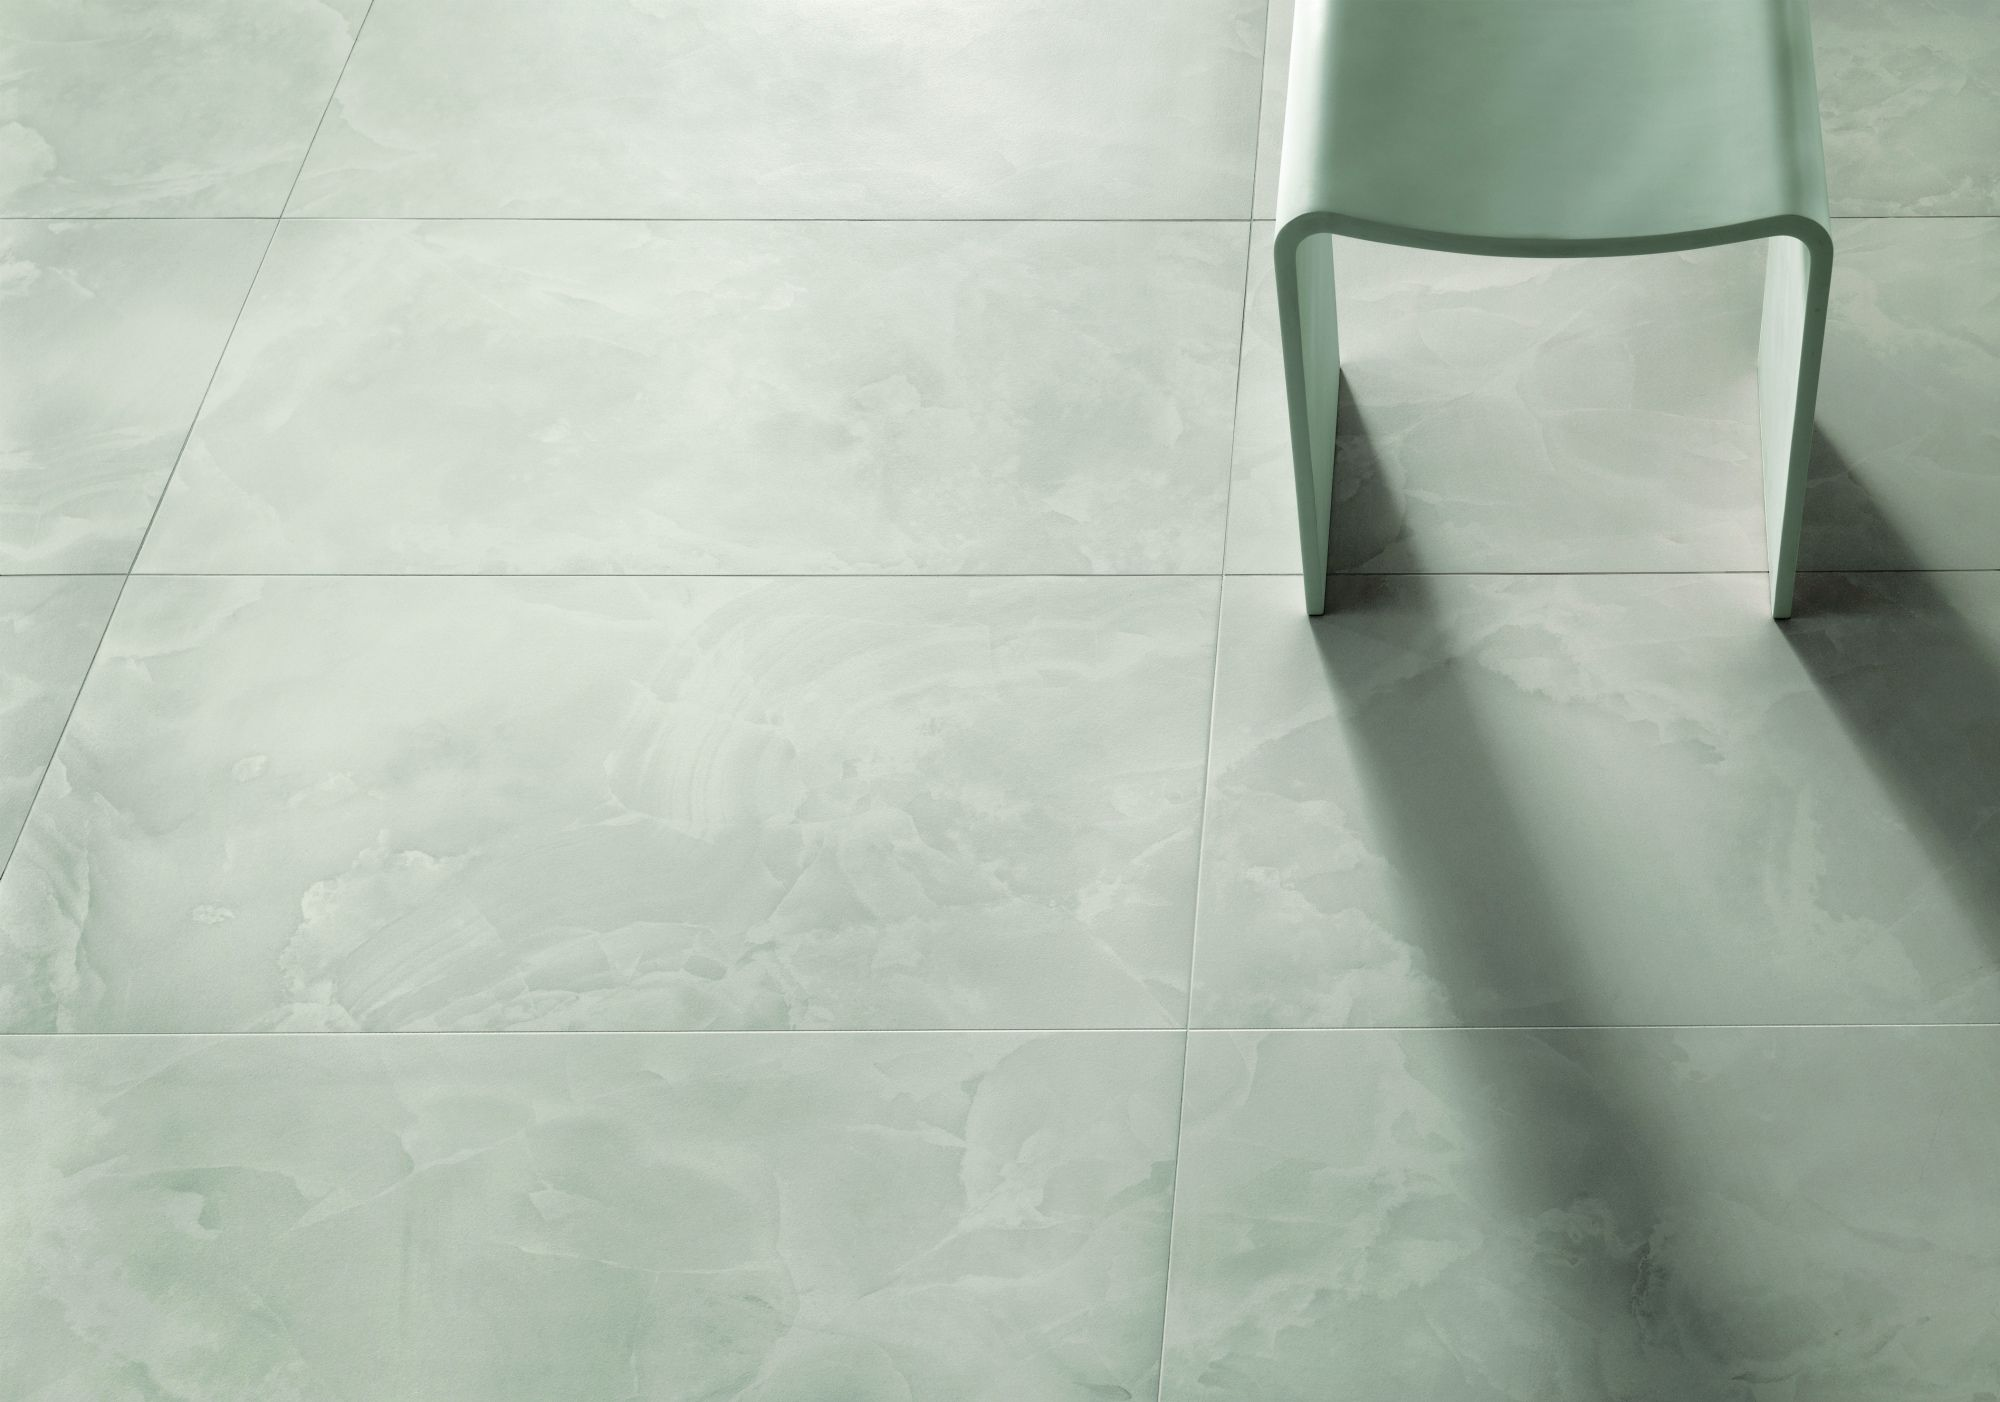 Design Evo Tiles Minoli Evolution Marvel Floor Tiles Evolution Marvel